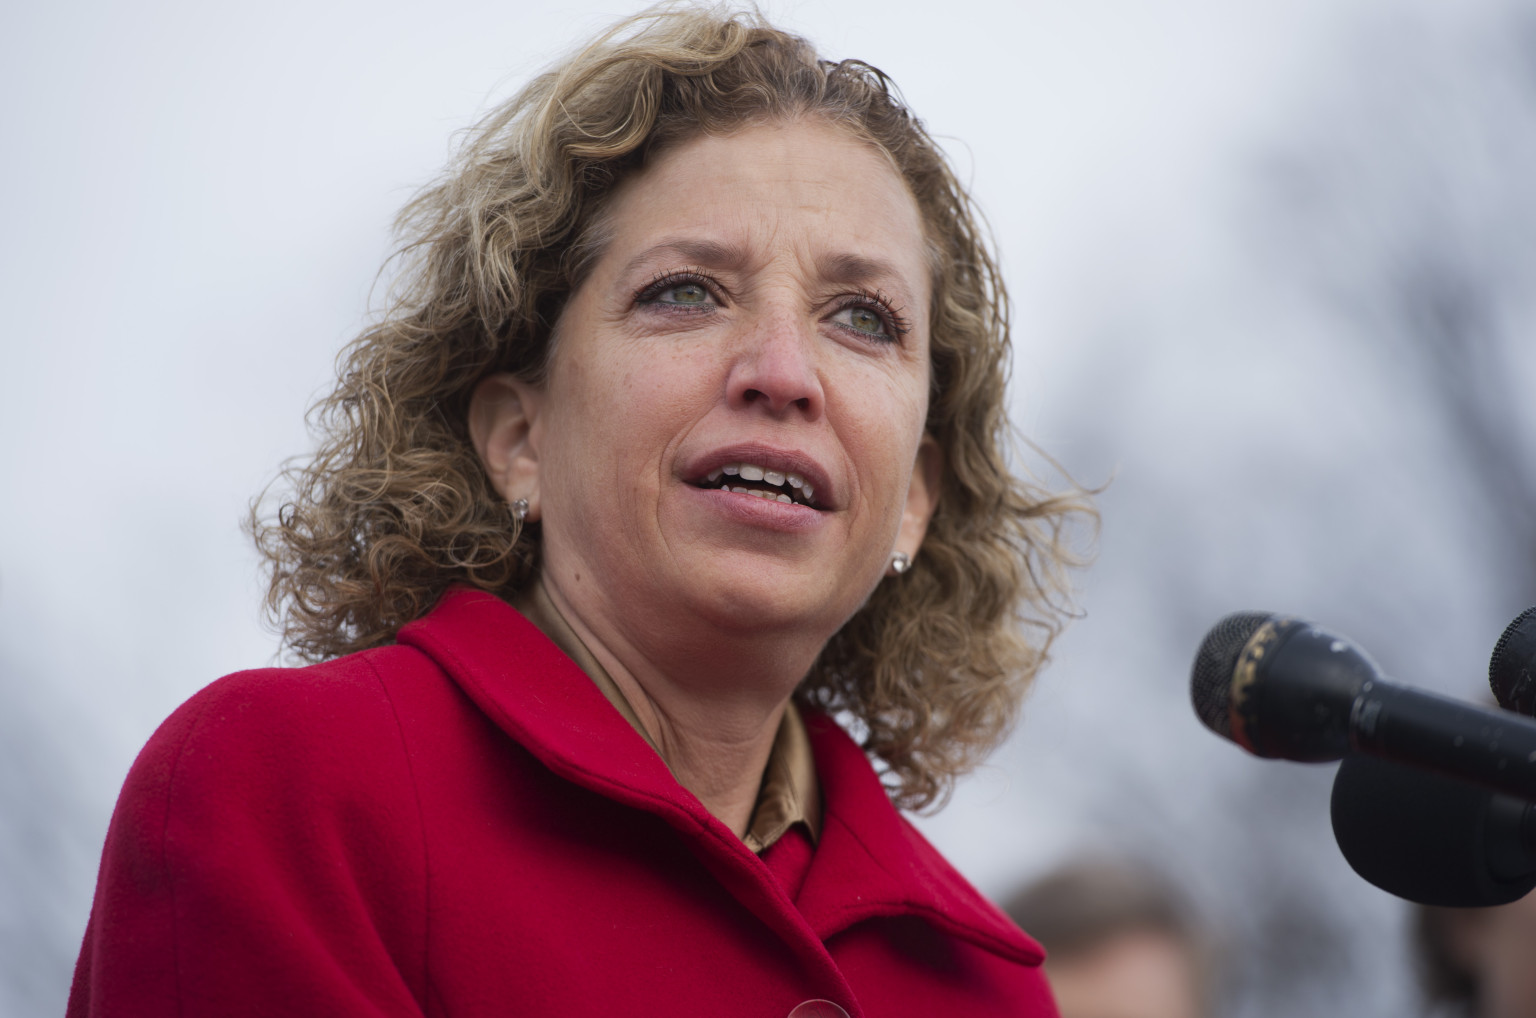 Even though the tactic doesnt seem to be working for Democrats Rep Debbie Wasserman Schultz today doubled down on earlier rhetoric calling the National Rifle